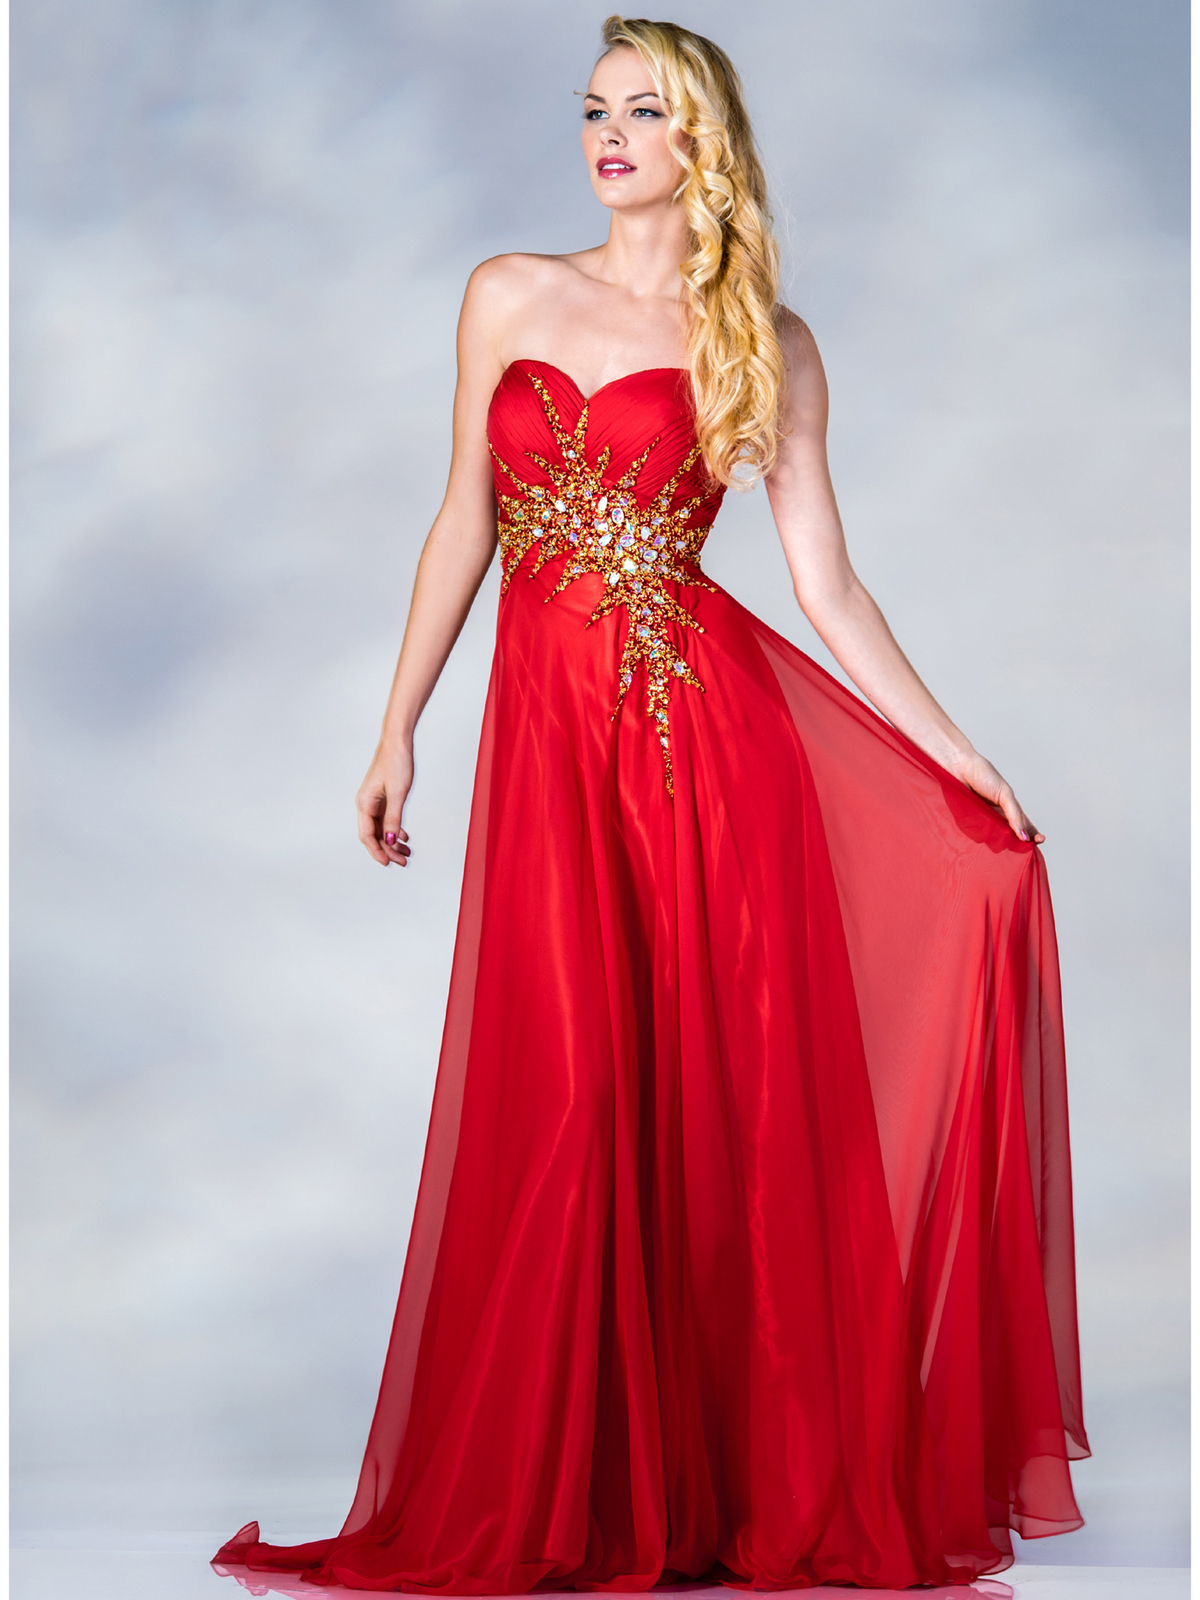 Tangerine Strapless Beaded Prom Dress | Sung Boutique L.A.